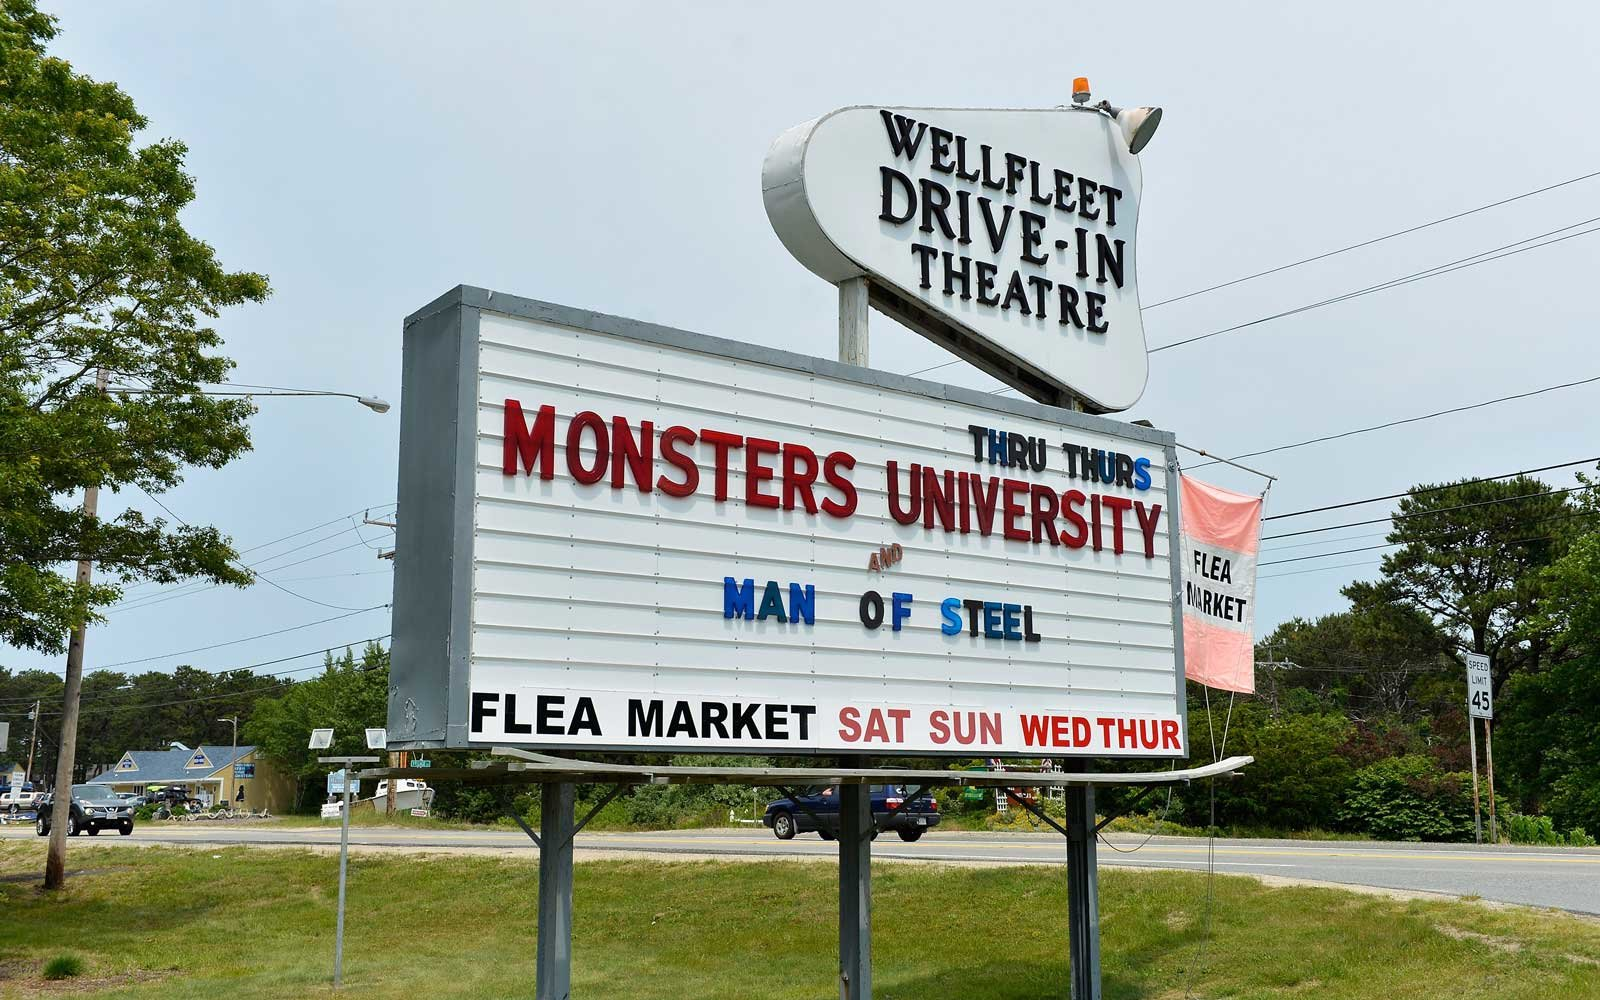 Wellfeet Drive In Theater Cape Cod